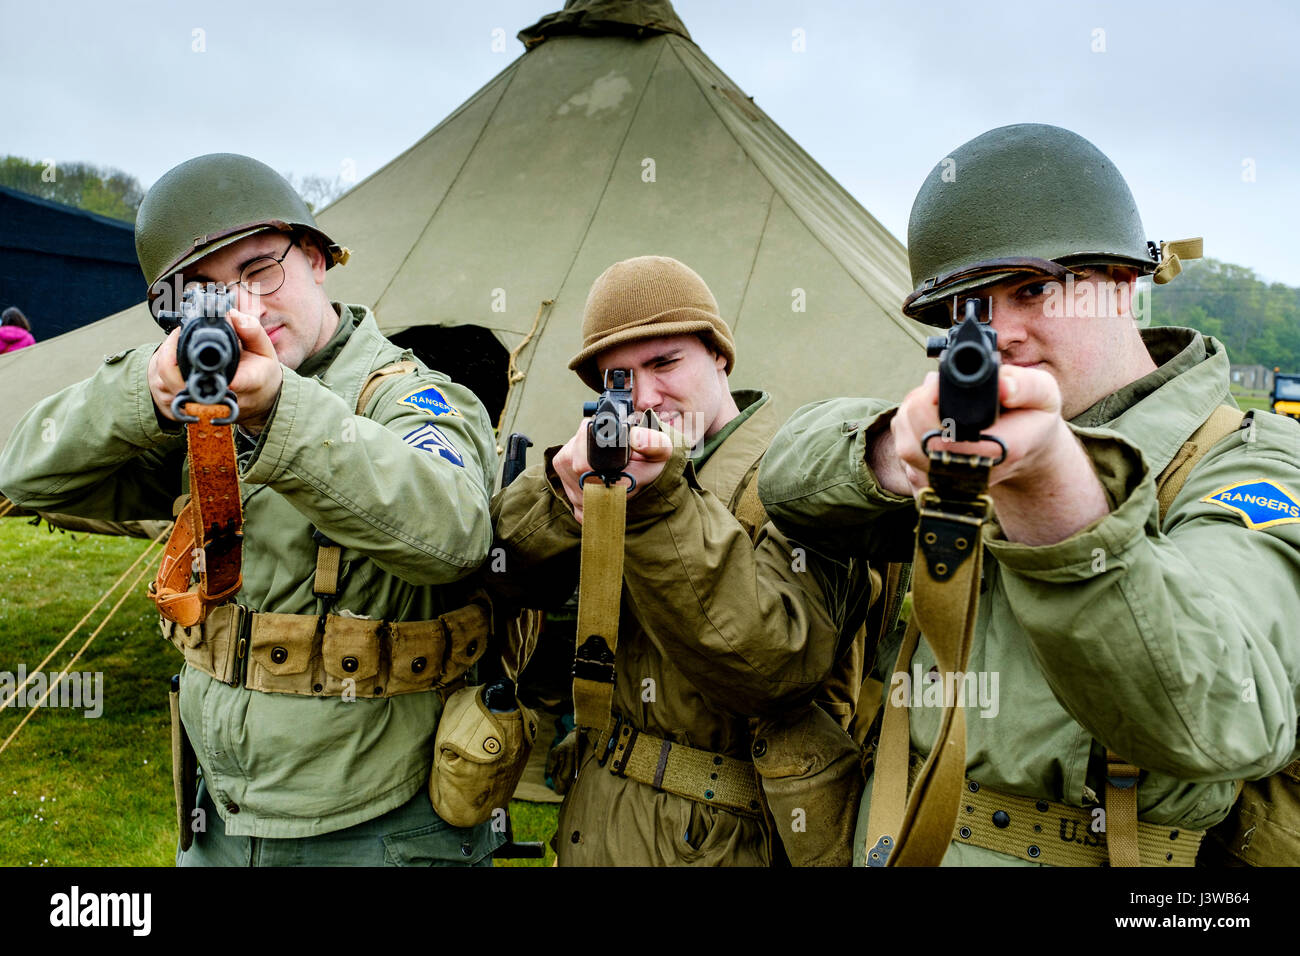 Sunday 7th May 2017 East Fortune, Scotland:  Wartime Experience at the National Museum of Flight, East Fortune. - Stock Image